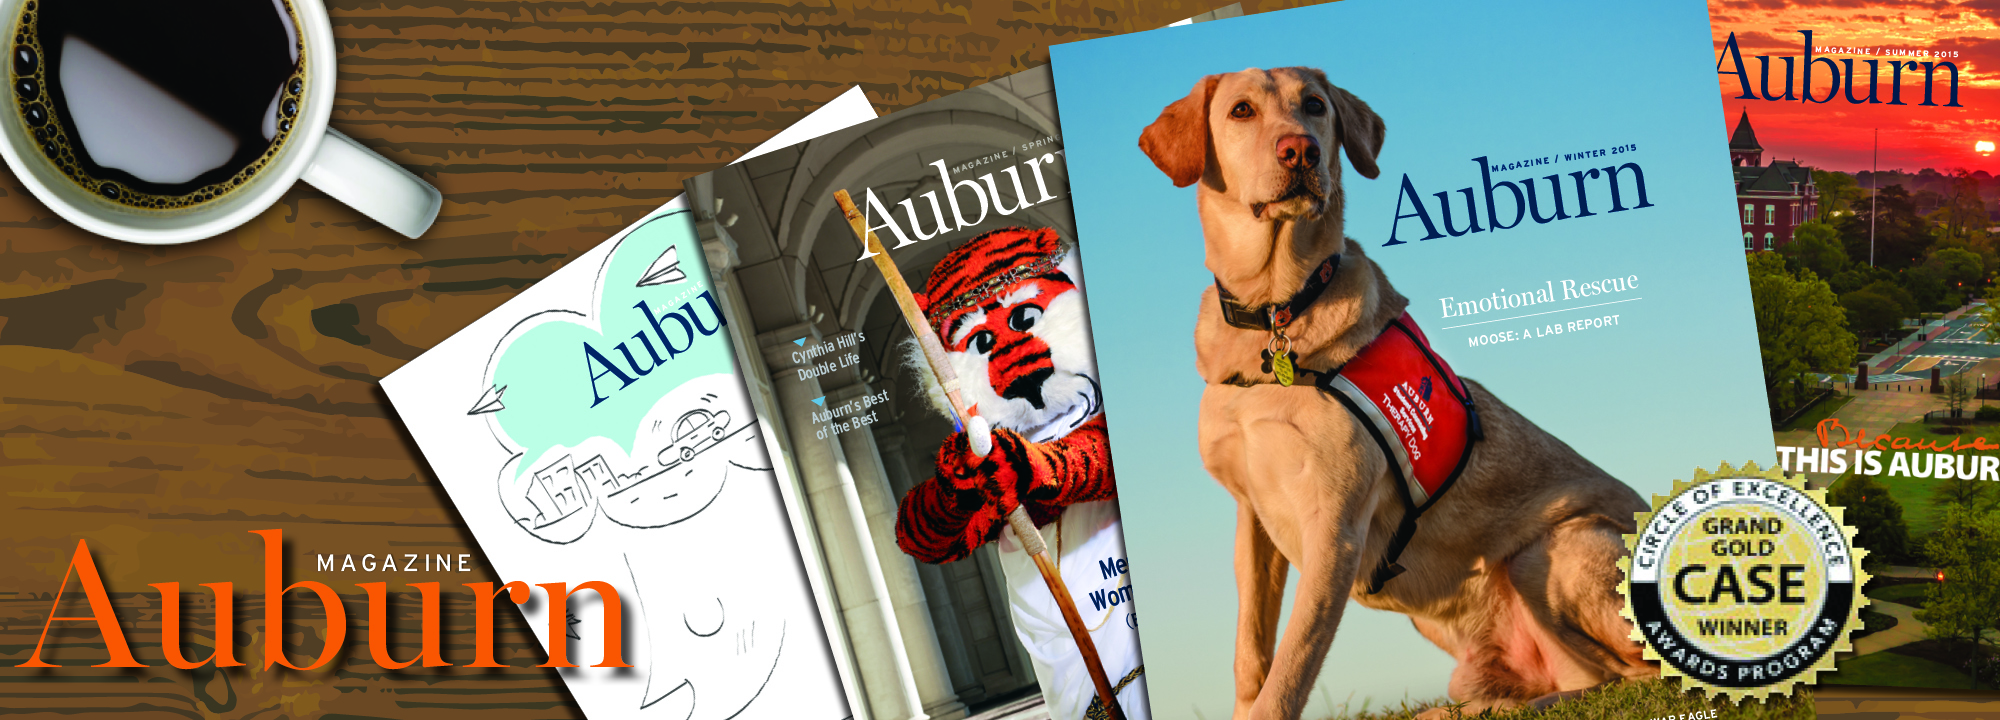 Auburn Magazine One of top 5 College and University Magazines